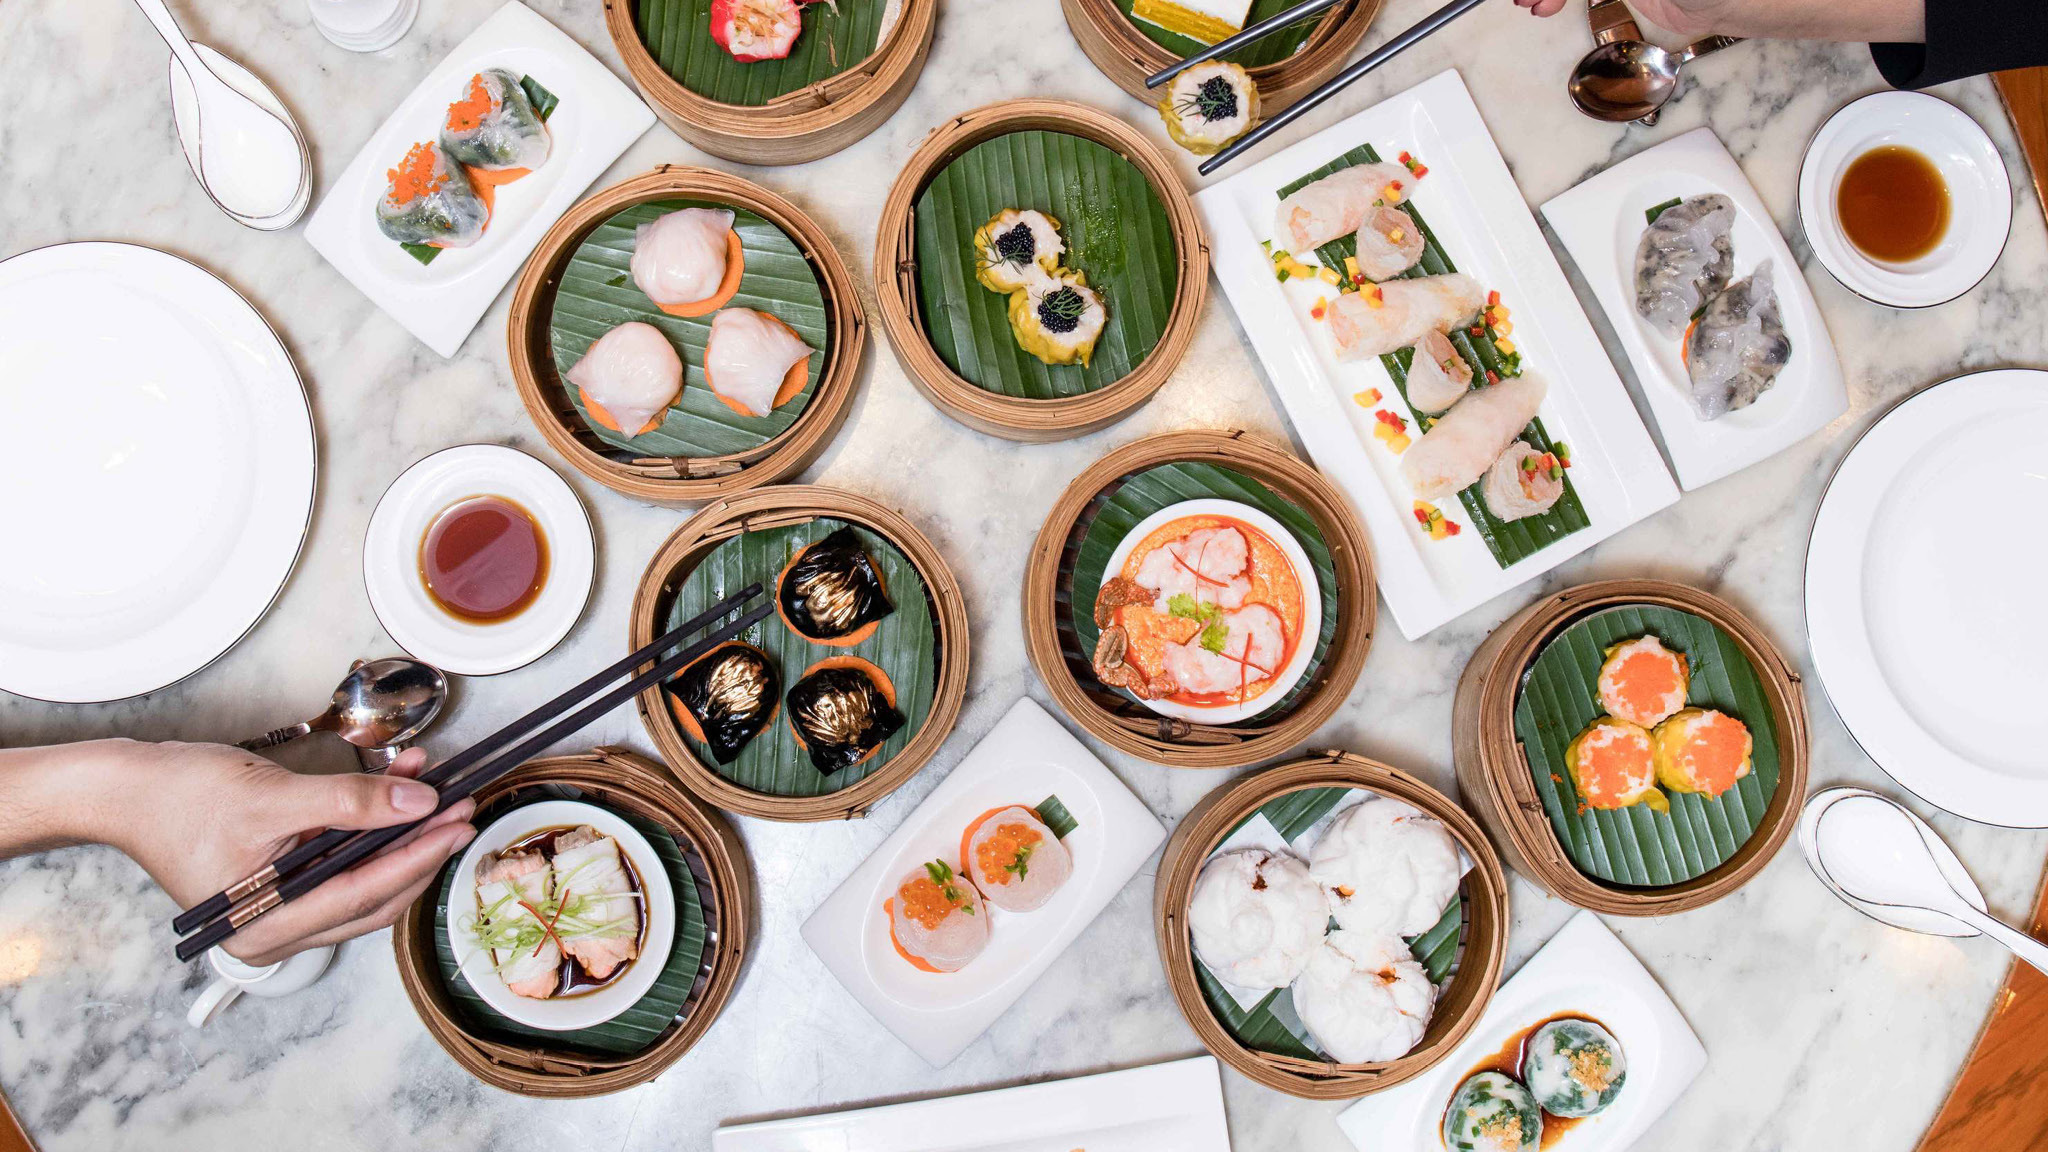 Loong Foong, Dim Sum, Chinese food